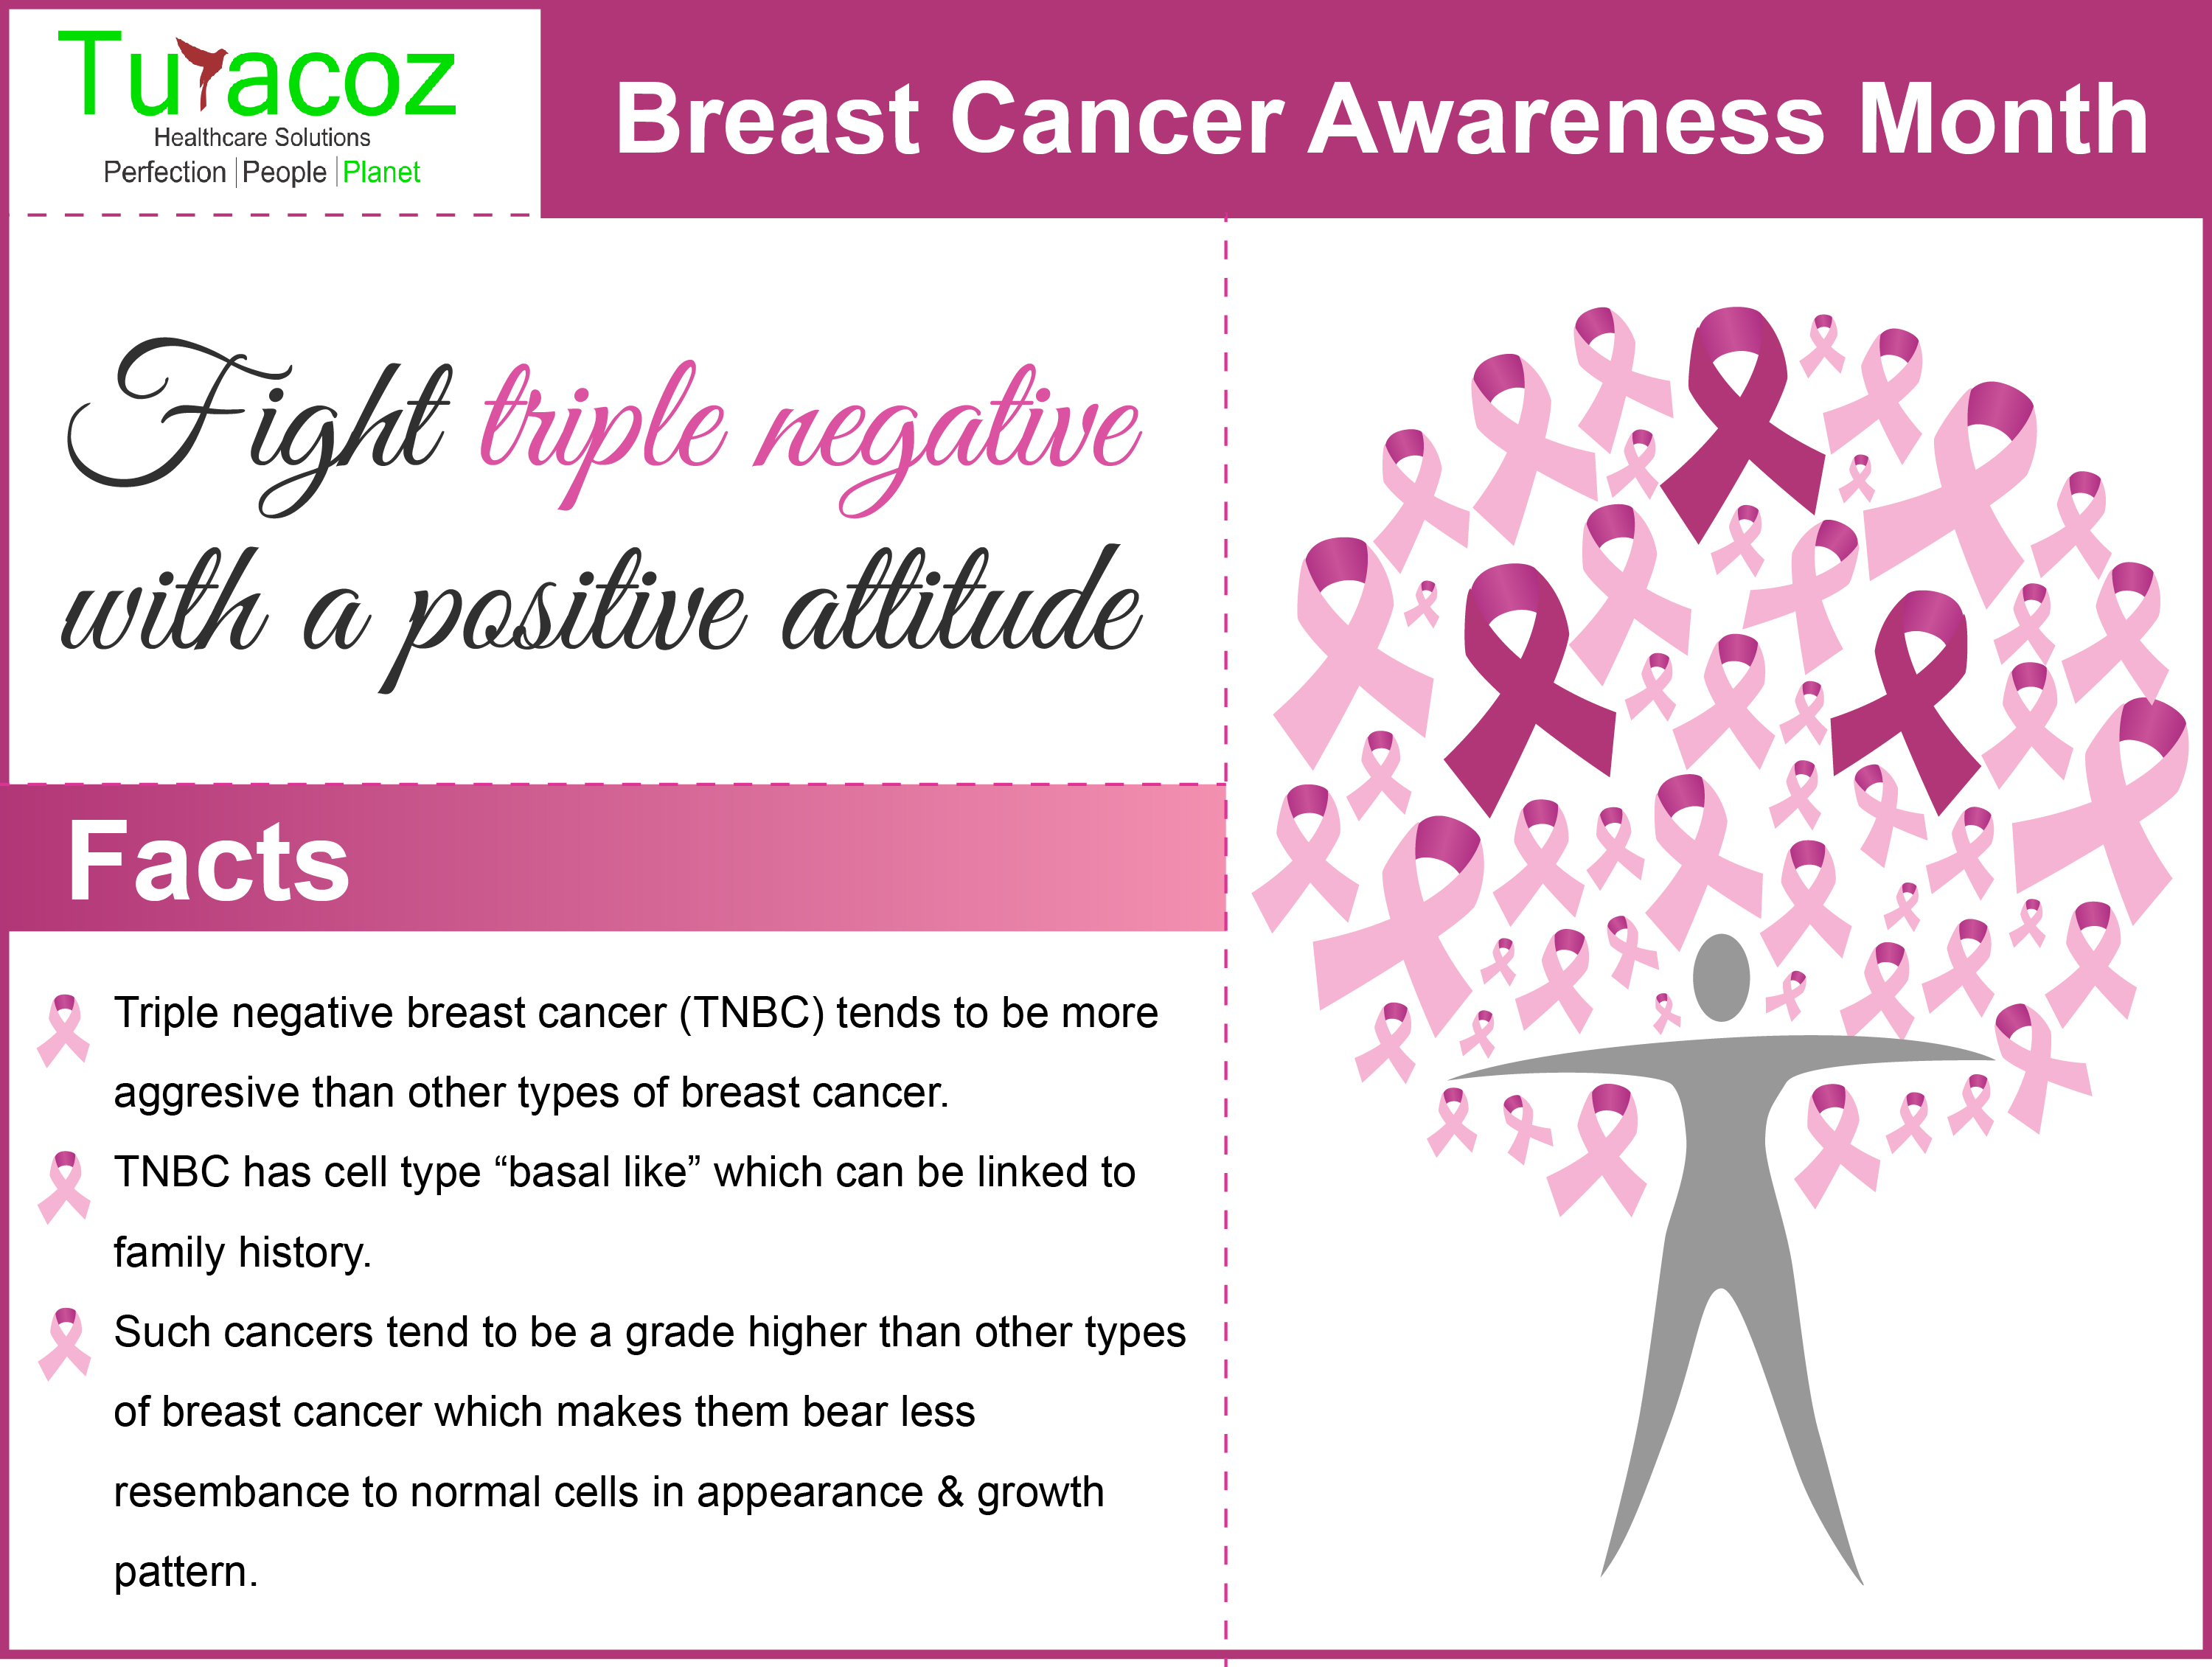 triple negative breast cancer research paper Write research paper – overview write research paper features when it's to do with custom essays the very first issue to comprehend is what you really buy well everyone knows it is exceedingly tricky to compose a composition an outstanding excellent informative article attracts a better grade and above all it functions being a benefit [.